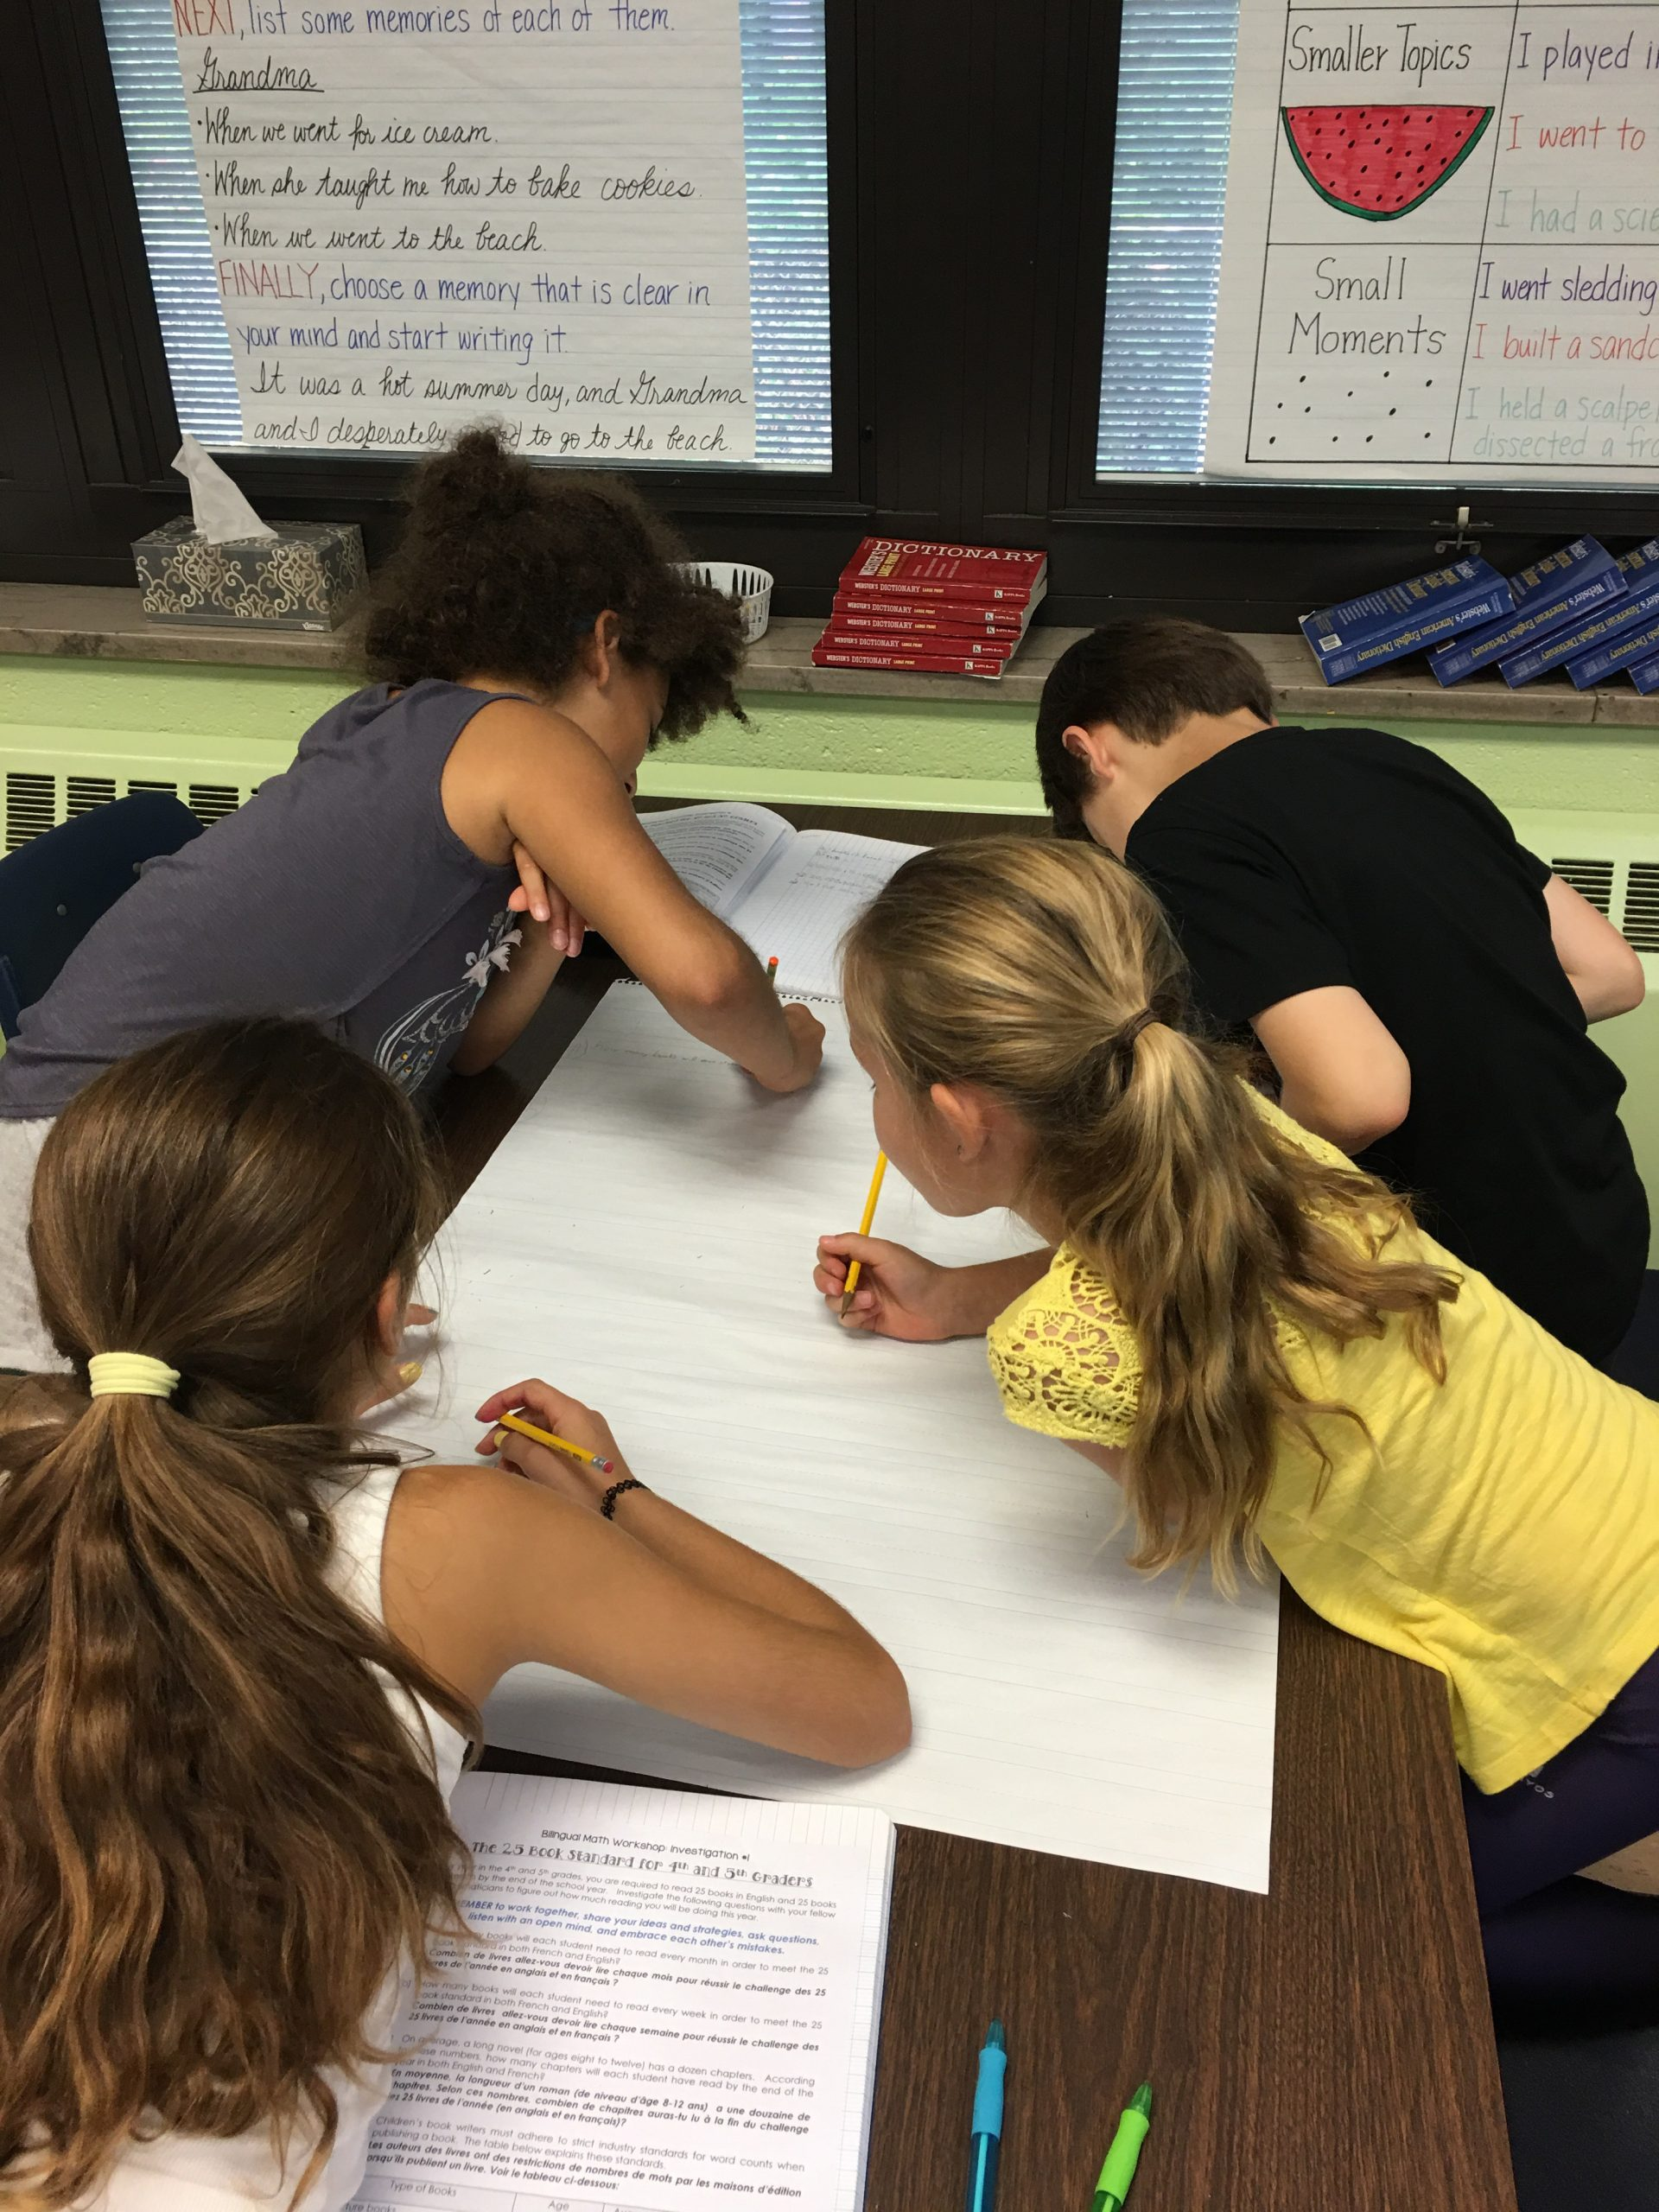 Elementary schoolers working on a language arts project on the floor